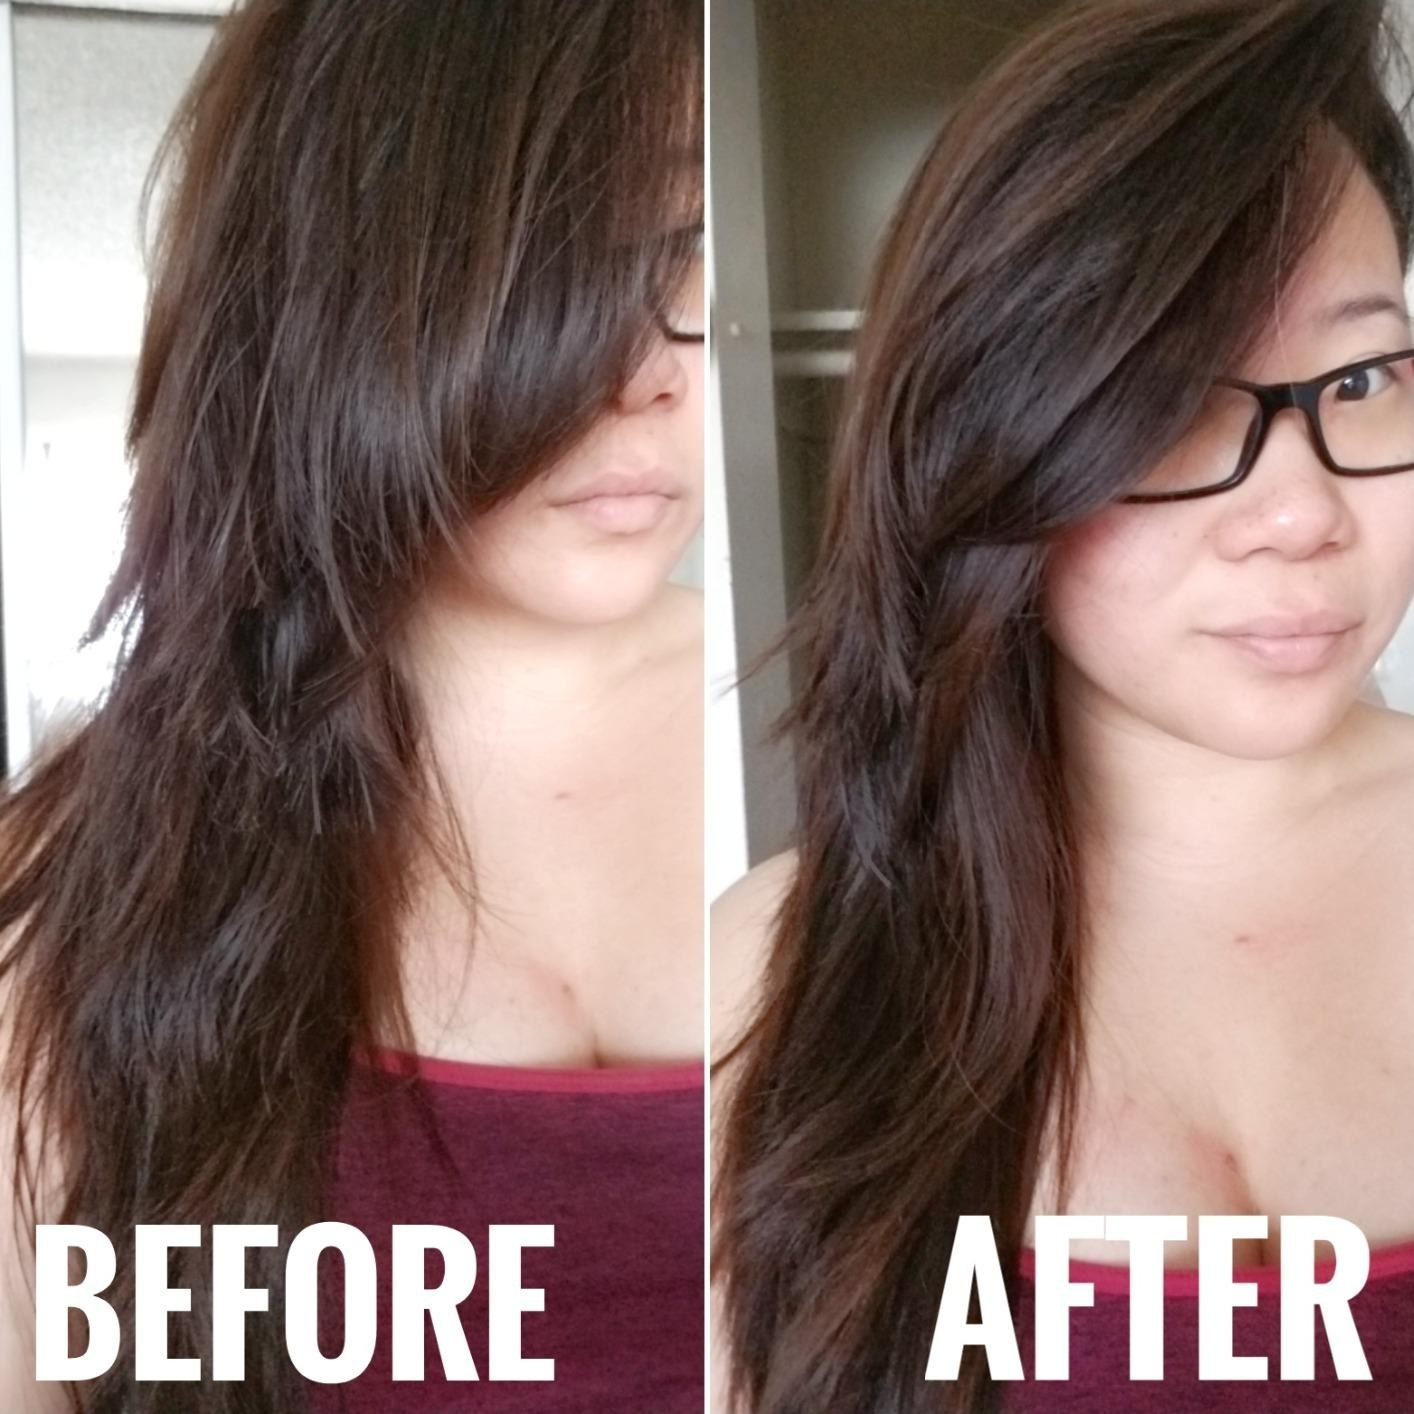 A before-and-after of a reviewer with dry, damaged hair and split ends compared to much healthier and smoother looking hair after using the serum